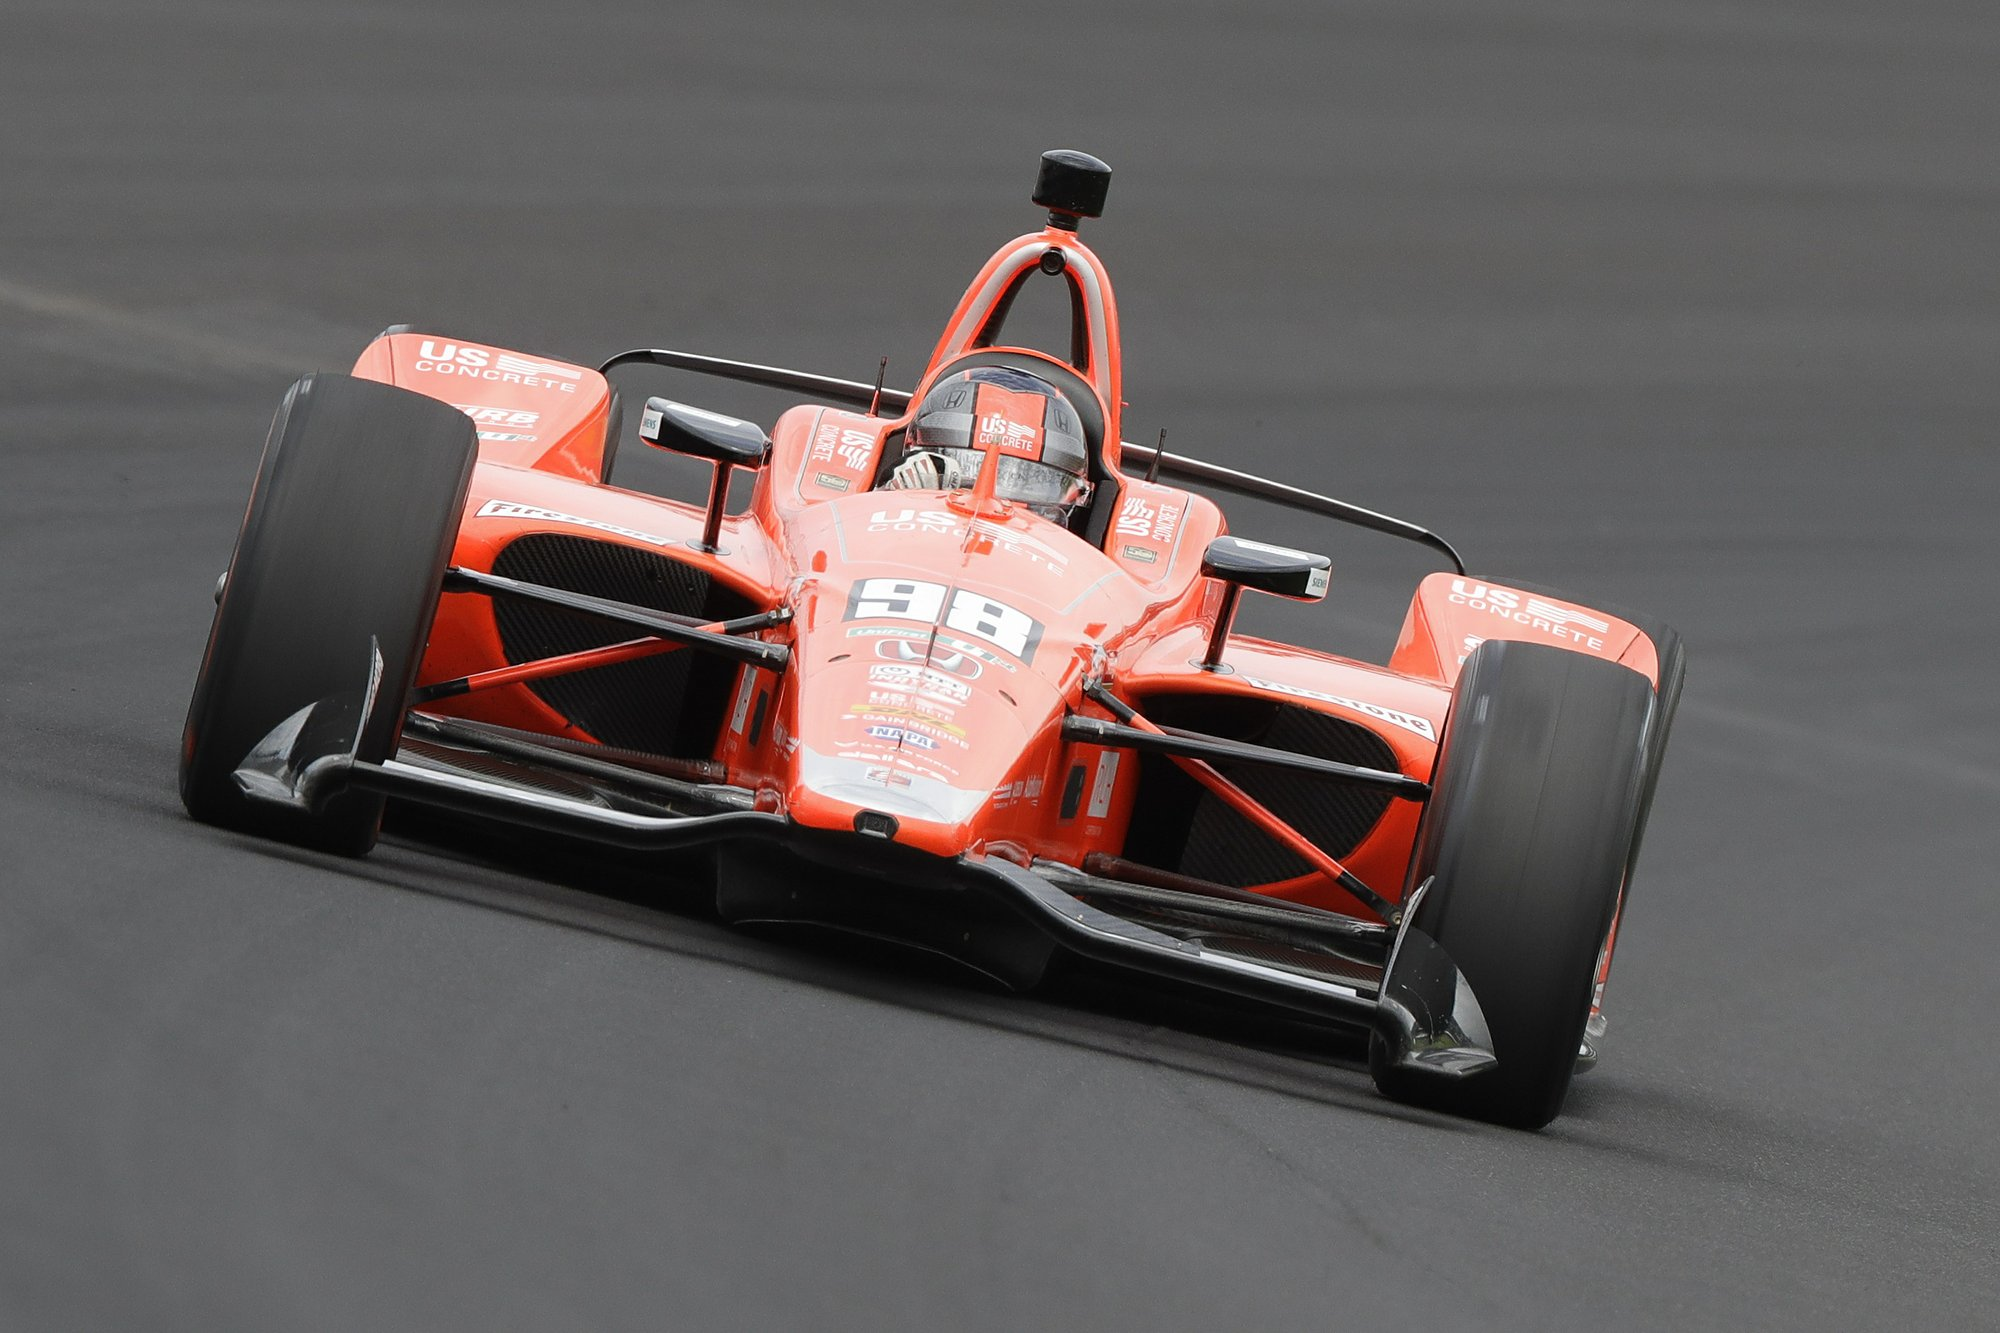 indy 500 qualifying - photo #38